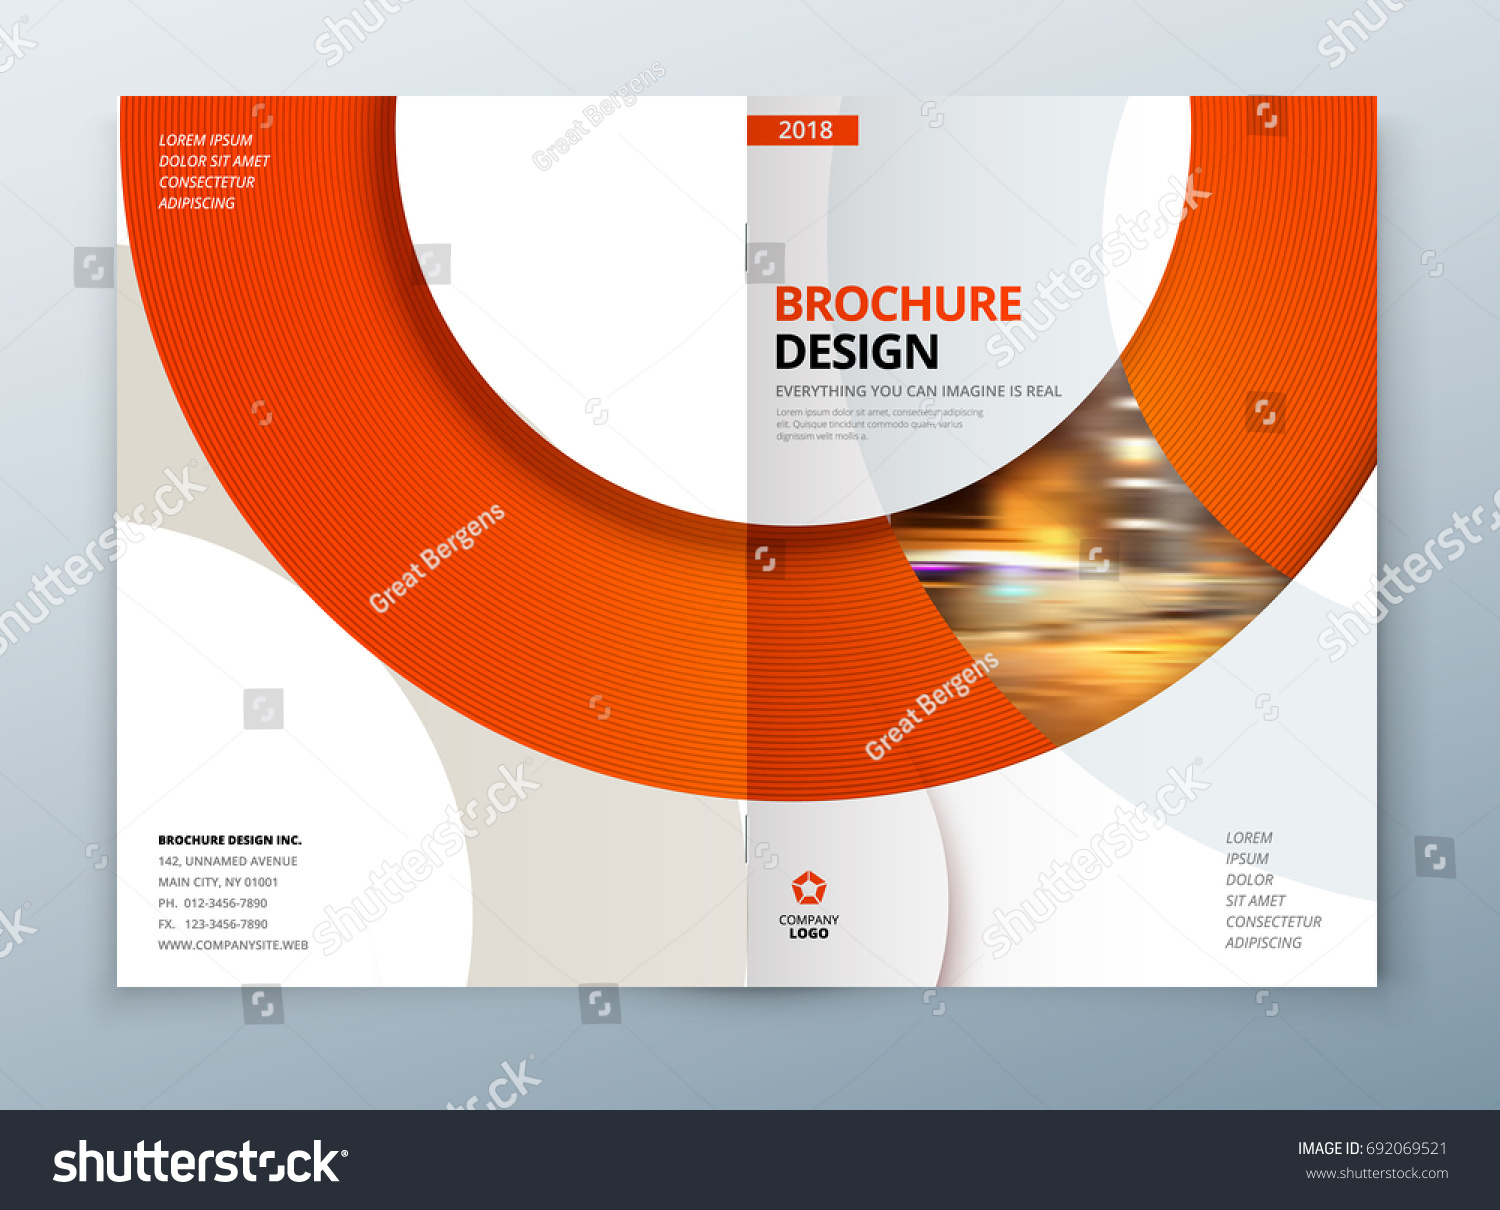 Brochure template layout design corporate business stock for Conceptual site model template